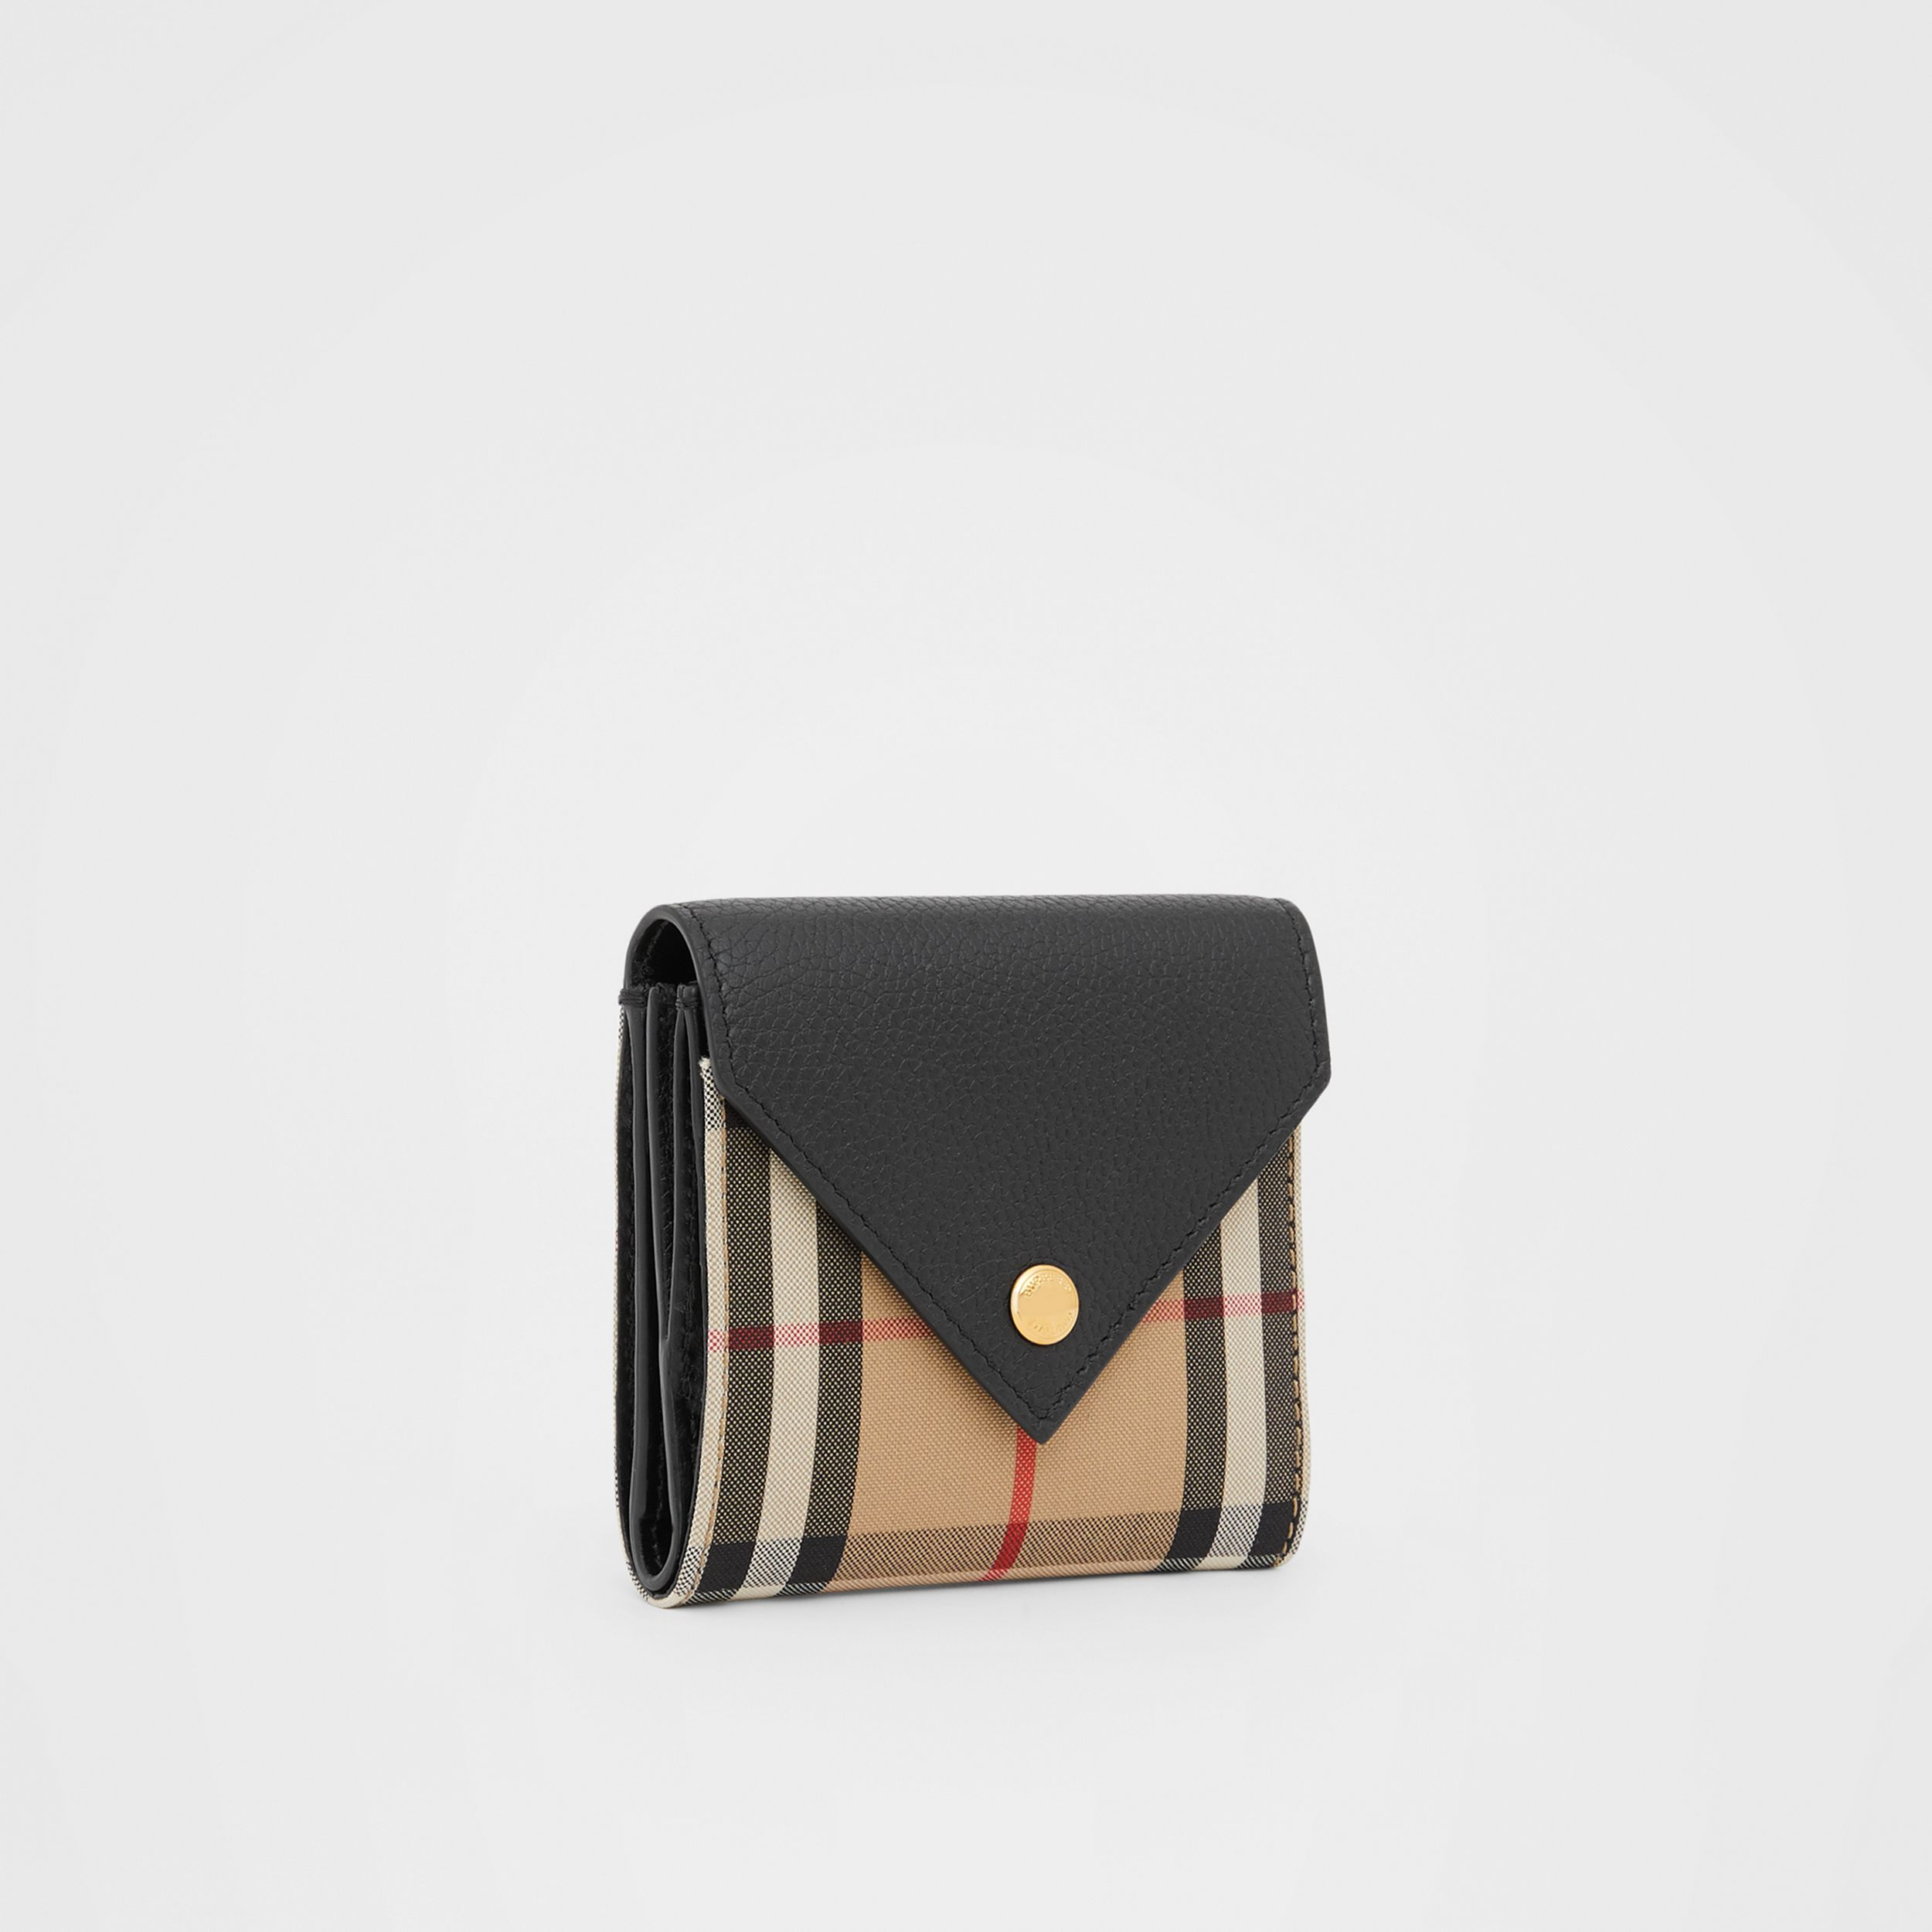 Vintage Check and Grainy Leather Folding Wallet in Black - Women | Burberry - 4